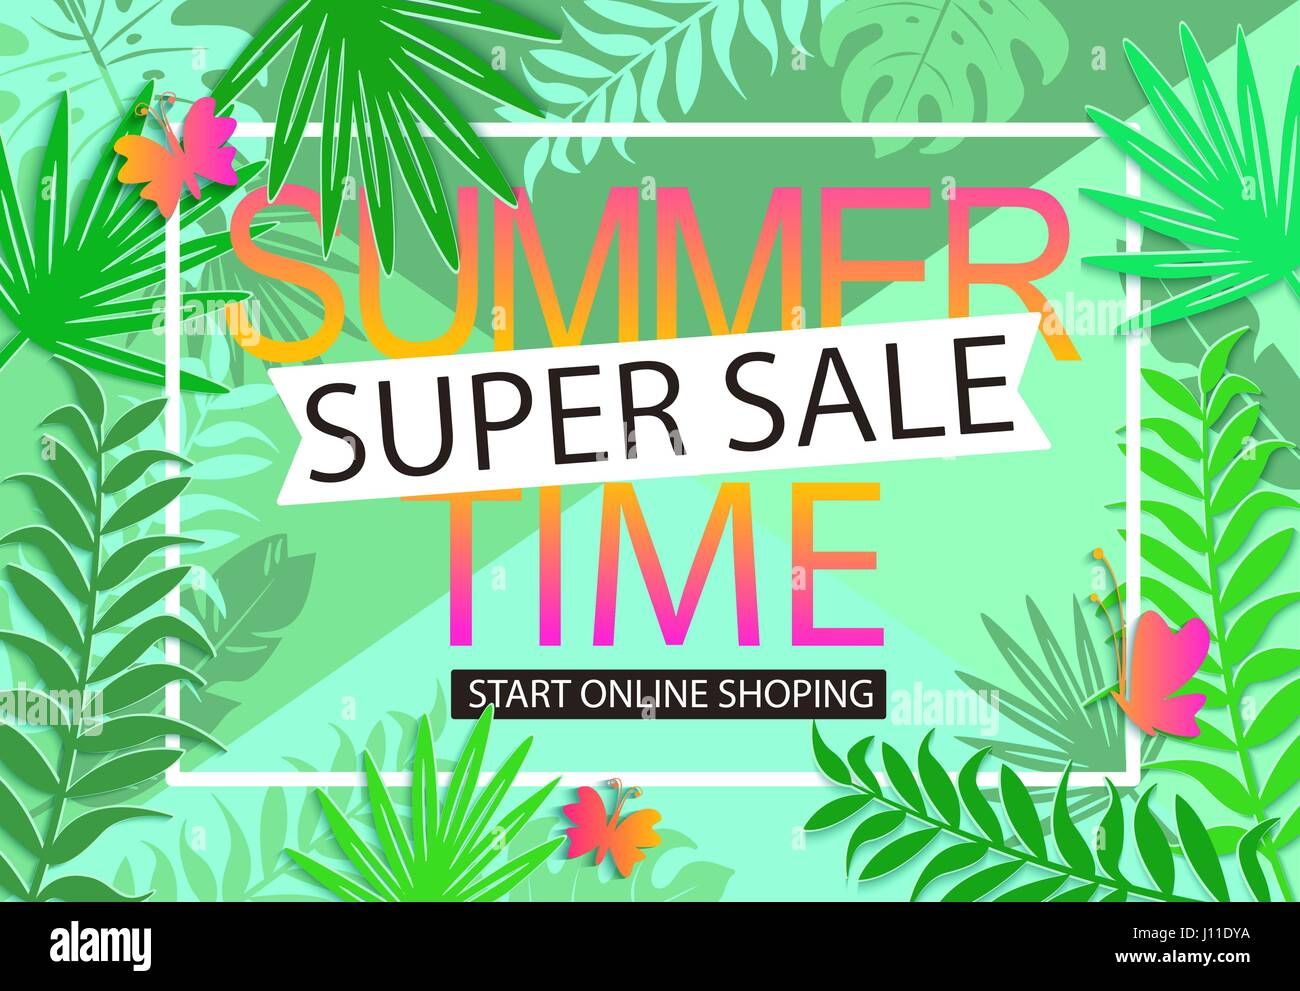 Summer Sale Geometric Background With Butterflies And Tropical Leaves Vector Illustration Template Banners Wallpaper Flyers Invitation Poster